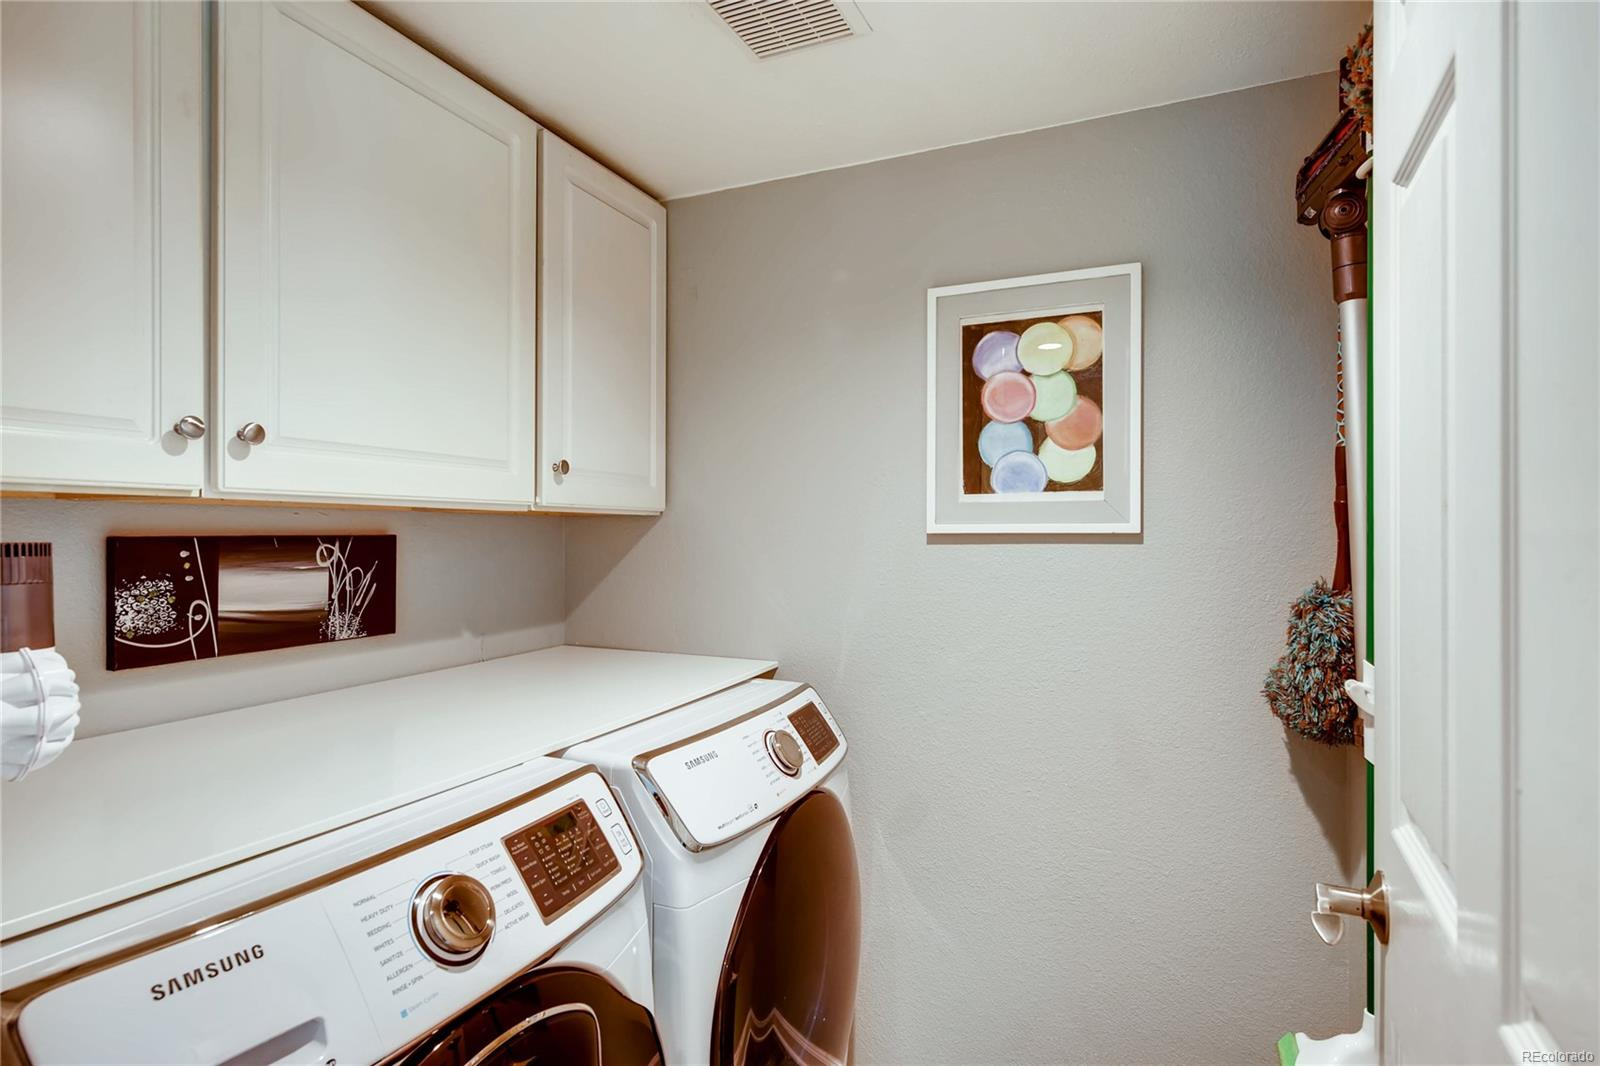 The laundry room is on the main level off the garage entrance. You have space to fold your laundry and store your supplies.